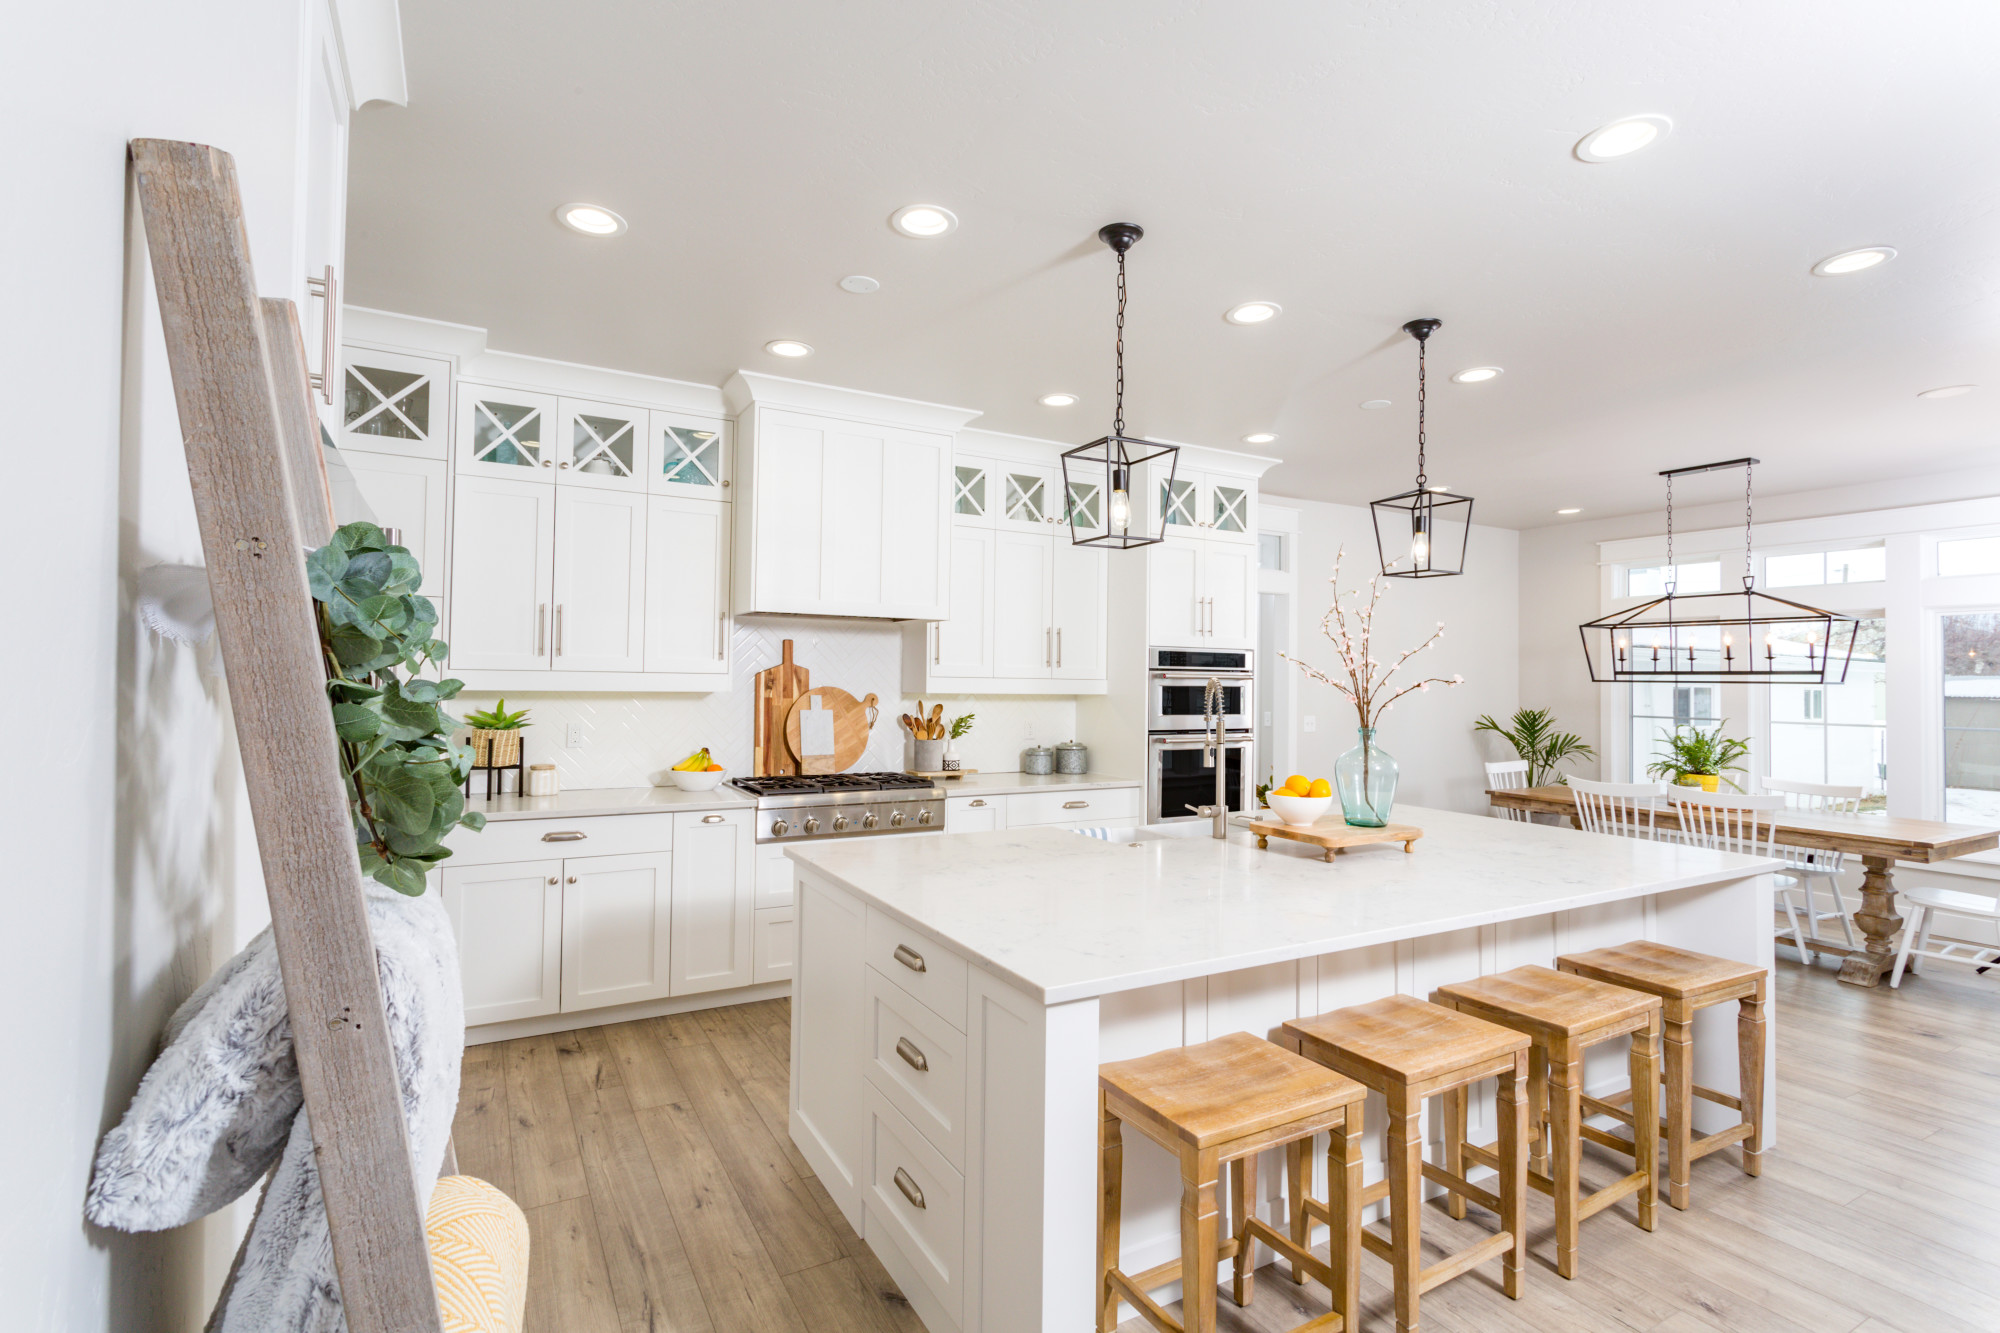 7 Key Features Every Kitchen Should Have